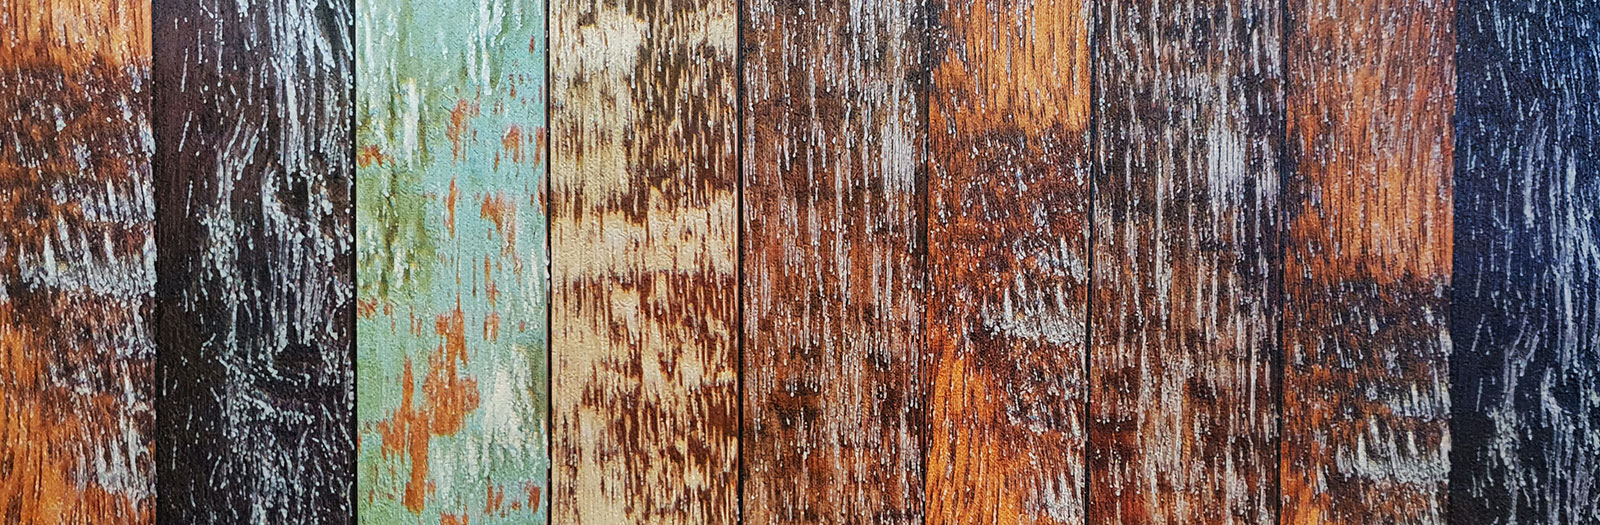 planks of different coloured wood